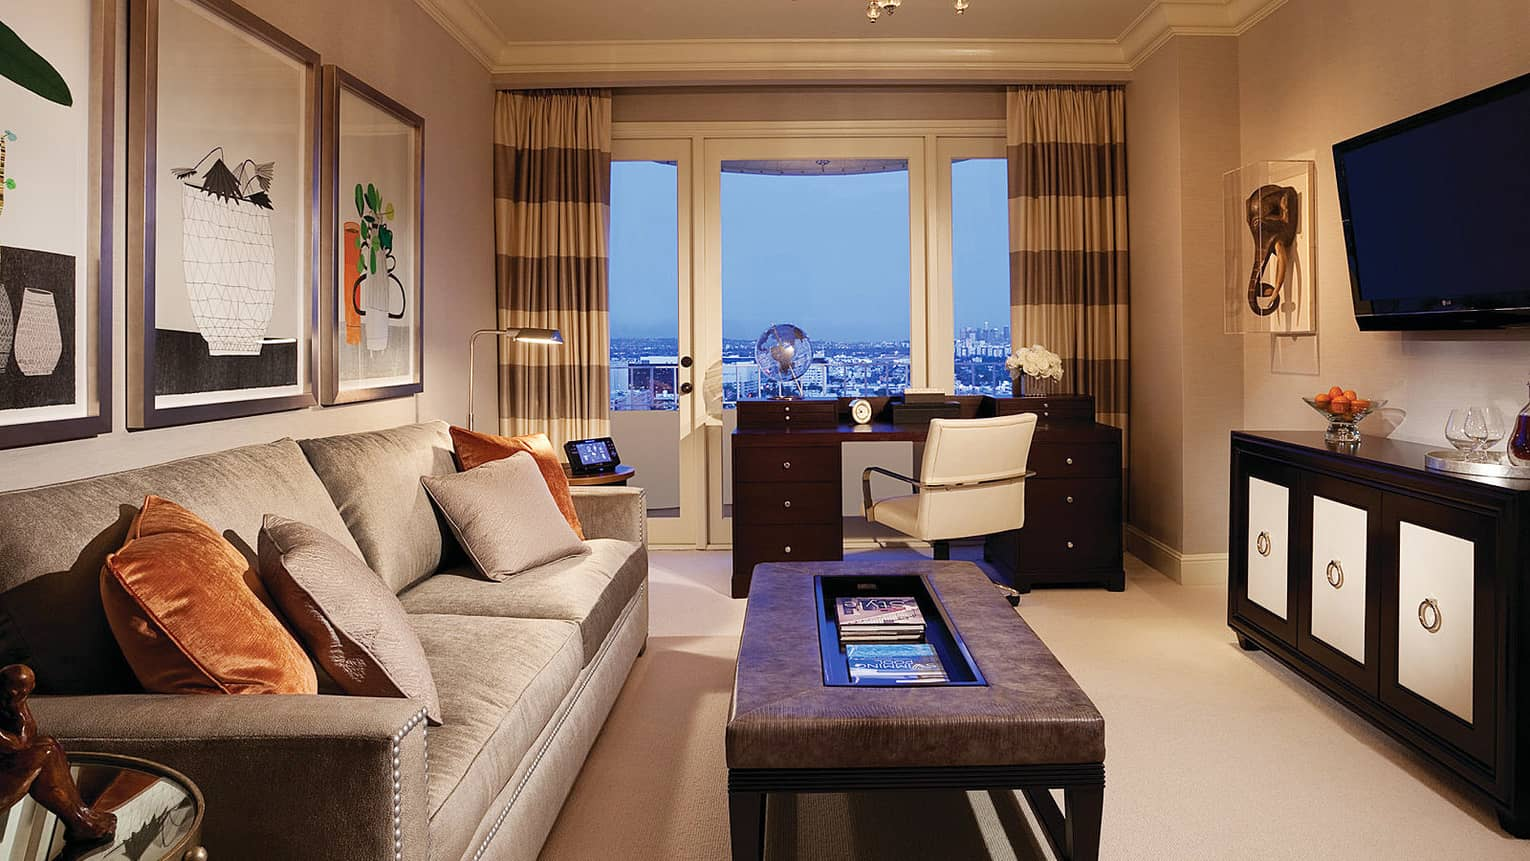 Hotel room living area with beige satin sofa, orange cushions, leather coffee table, desk at window overlooking city